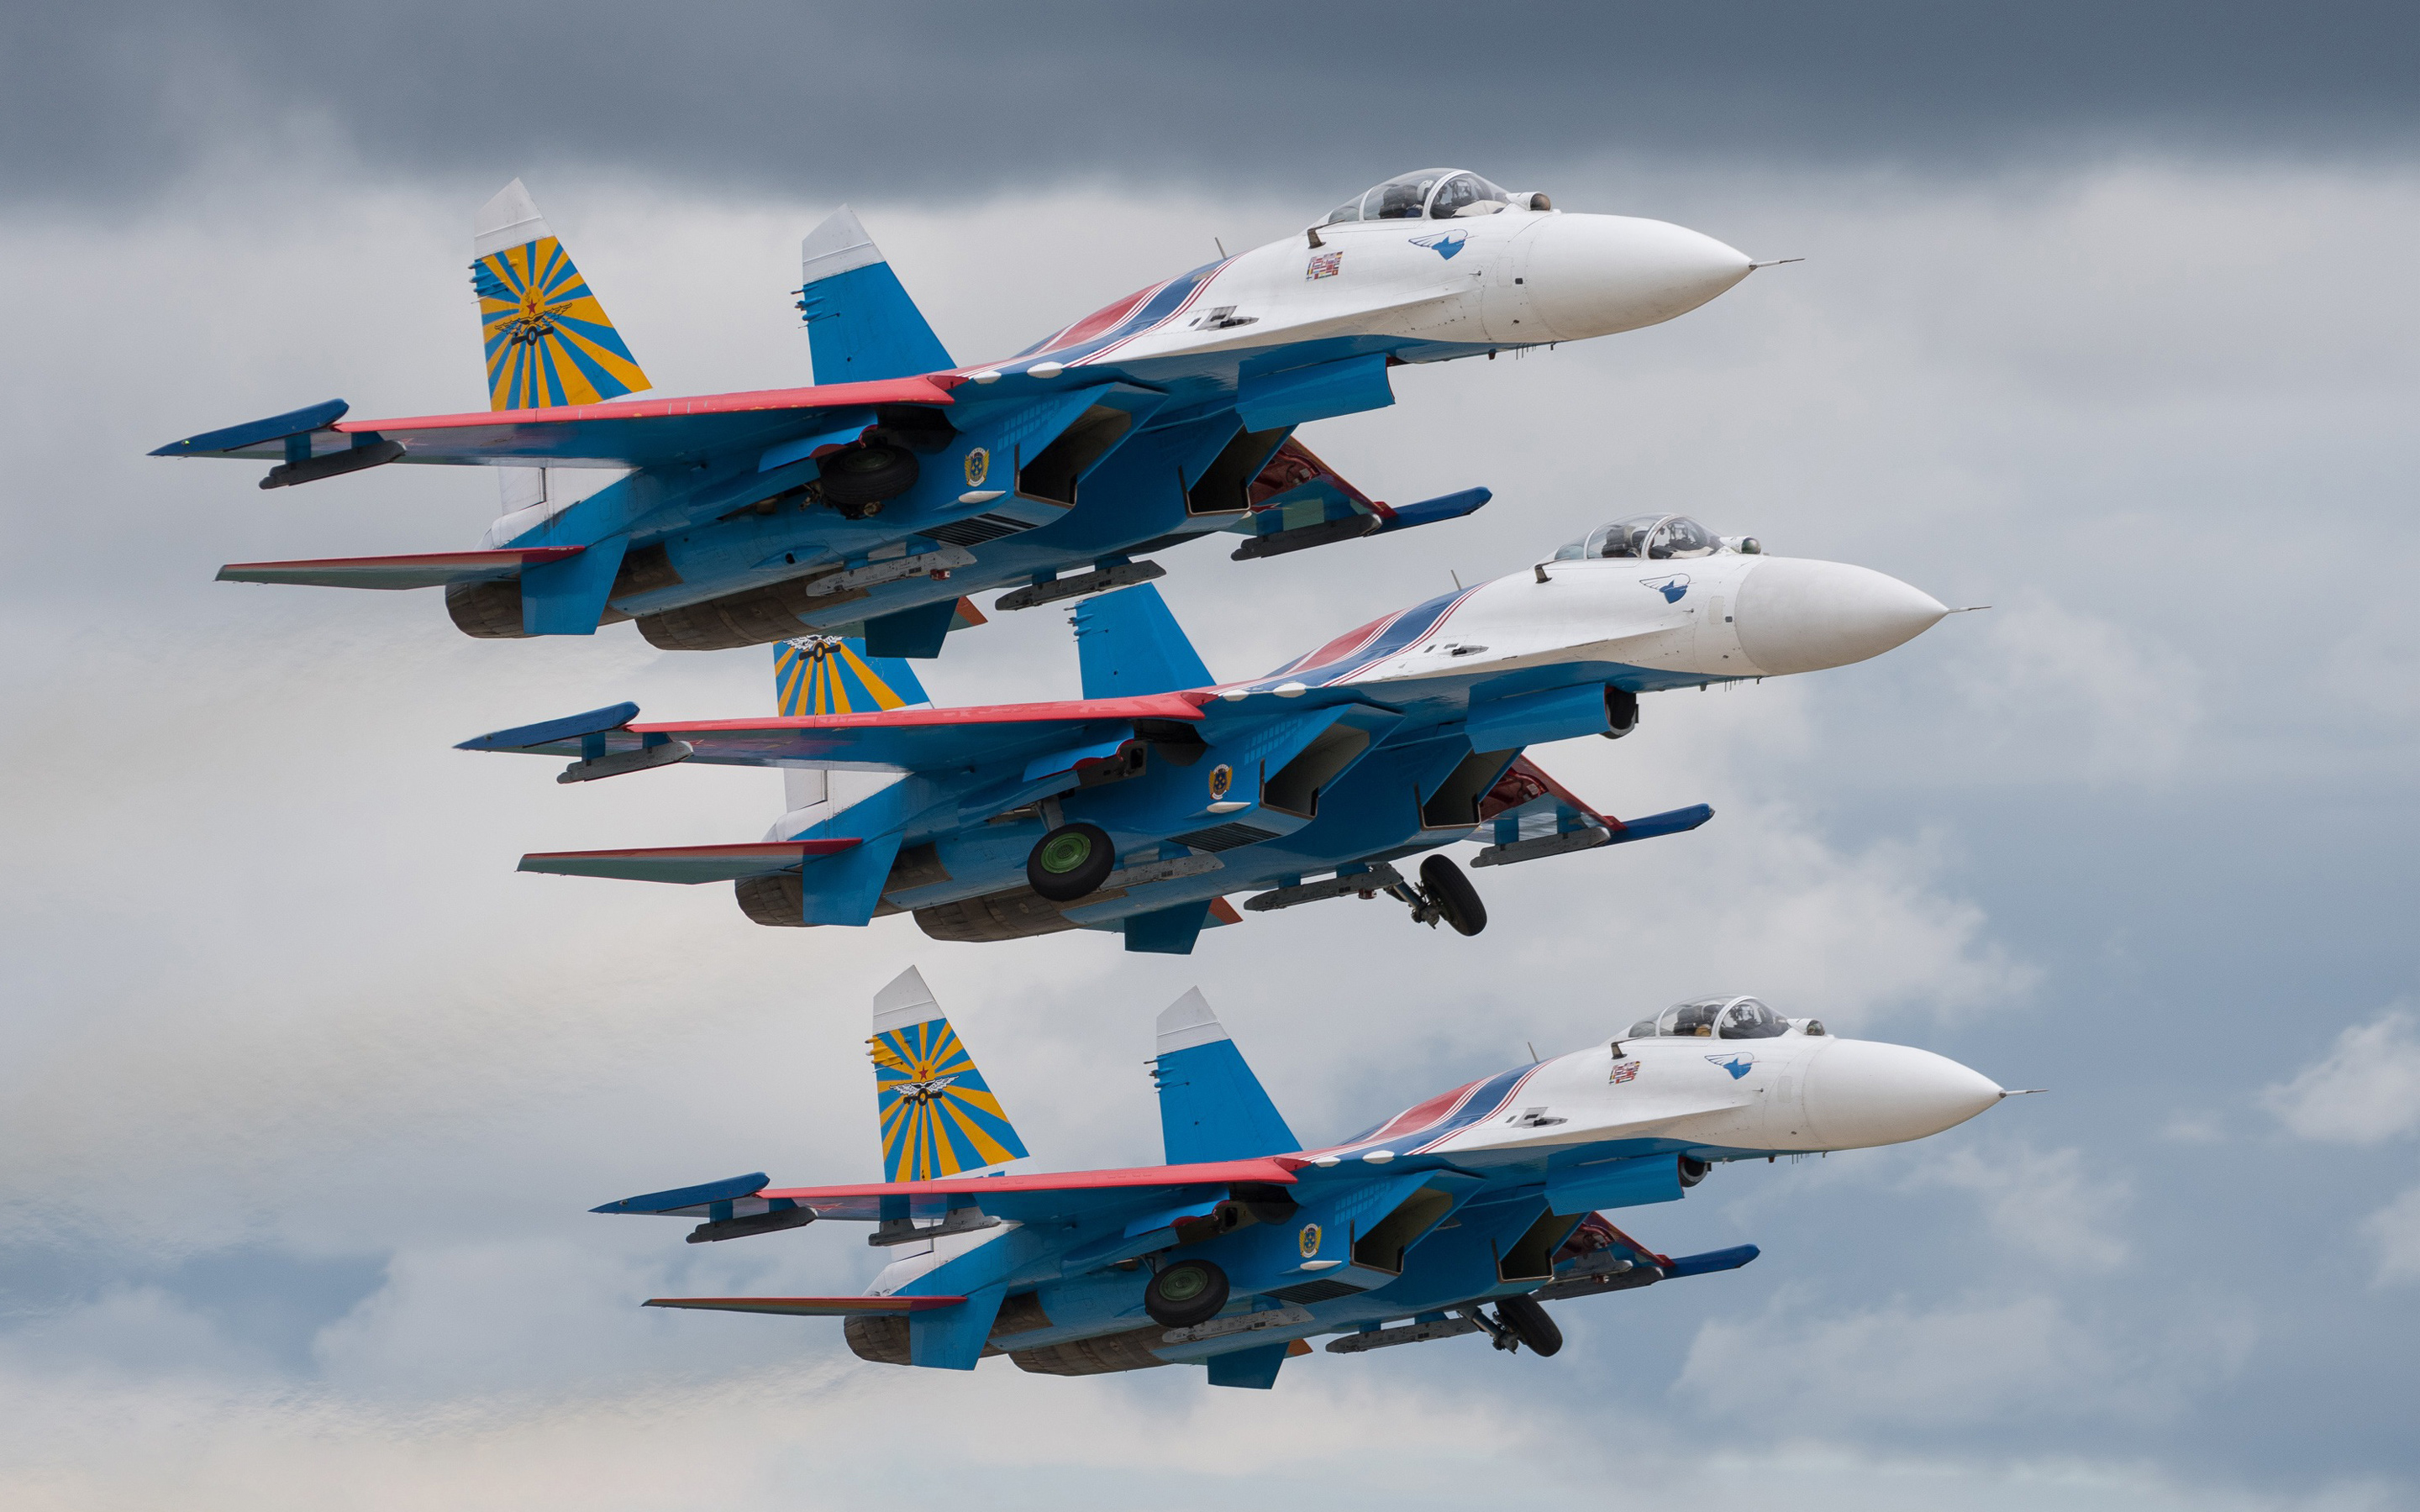 Sukhoi Su 27 Fighters7952815171 - Sukhoi Su 27 Fighters - Sukhoi, Gripen, Fighters